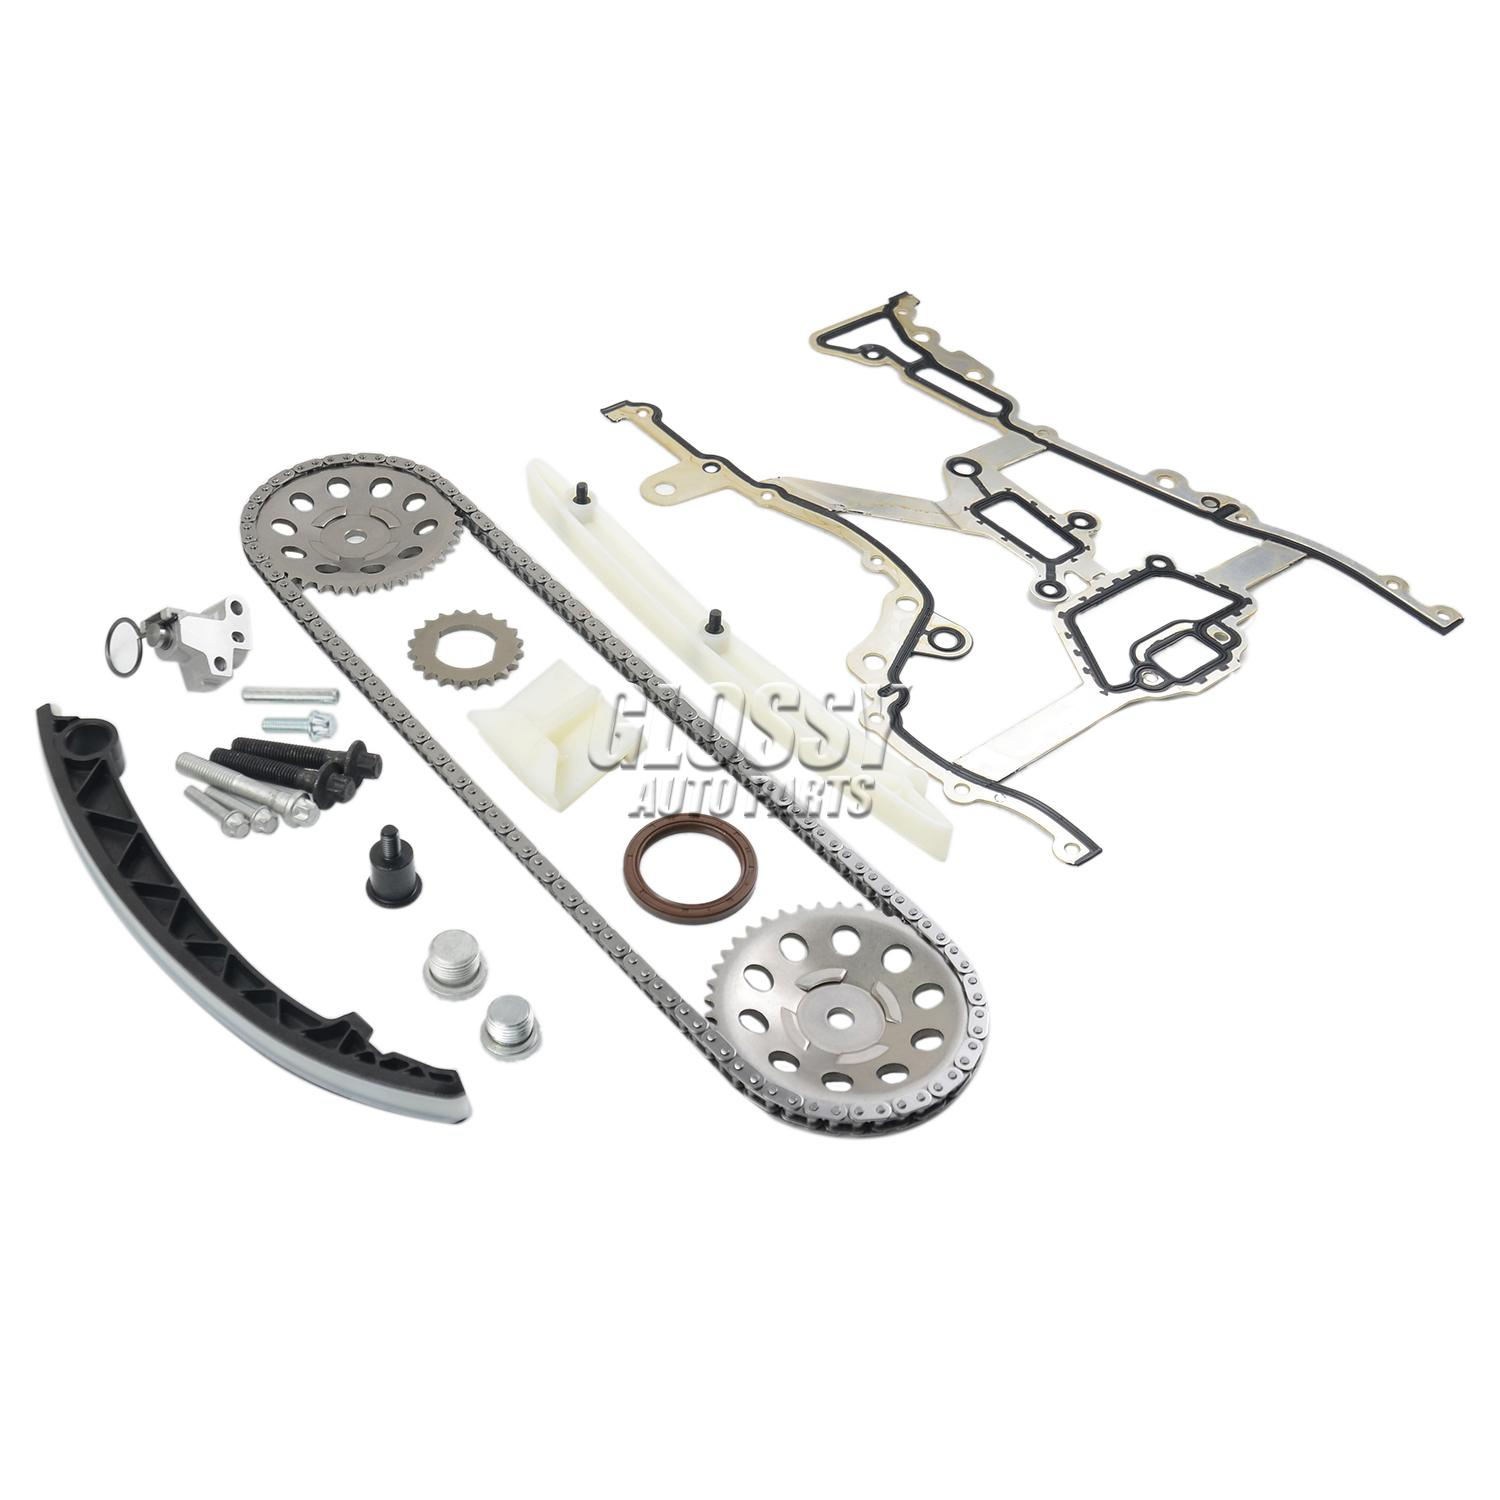 AP02 New Timing Chain Kit Camshaft Adjusters For <font><b>Opel</b></font> Agila Meriva Tigra Twintop Astra G H <font><b>Corsa</b></font> C <font><b>D</b></font> 1.0 1.2 1.4 image